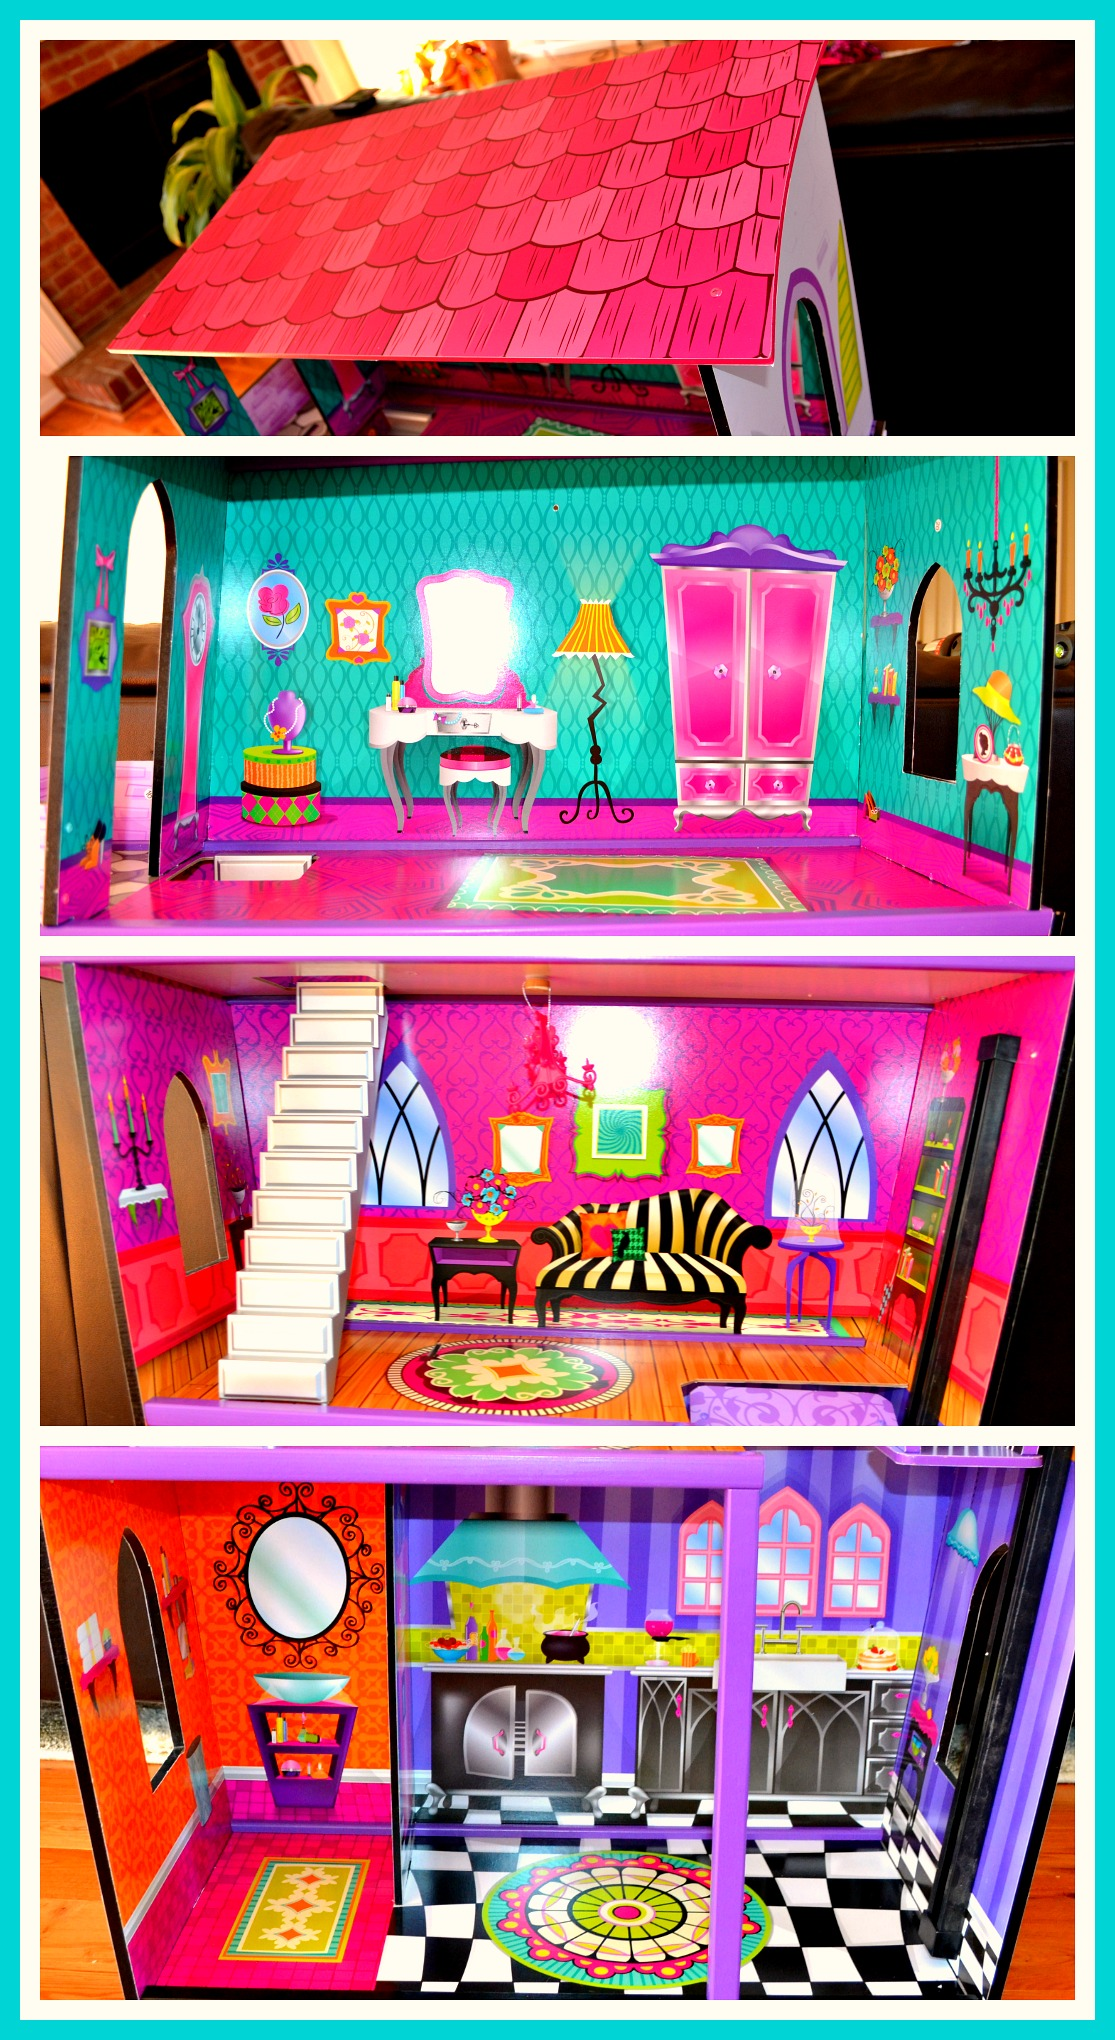 KidKraft Monster Manor Dollhouse Review